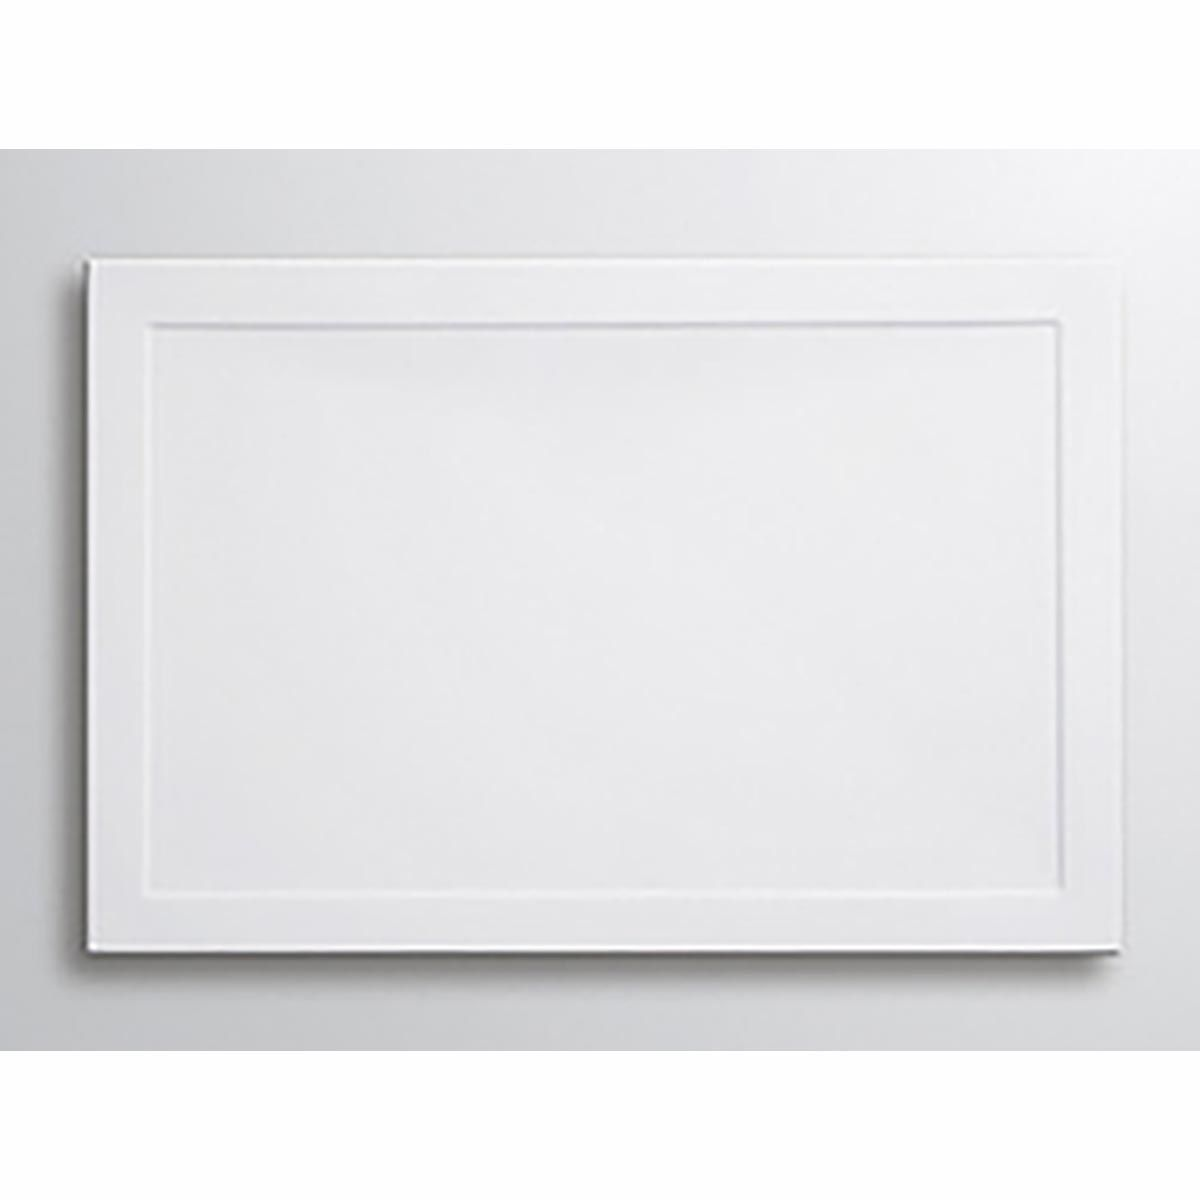 Lakes White Low Profile Rectangular ABS Tray 1800mm X 900mm